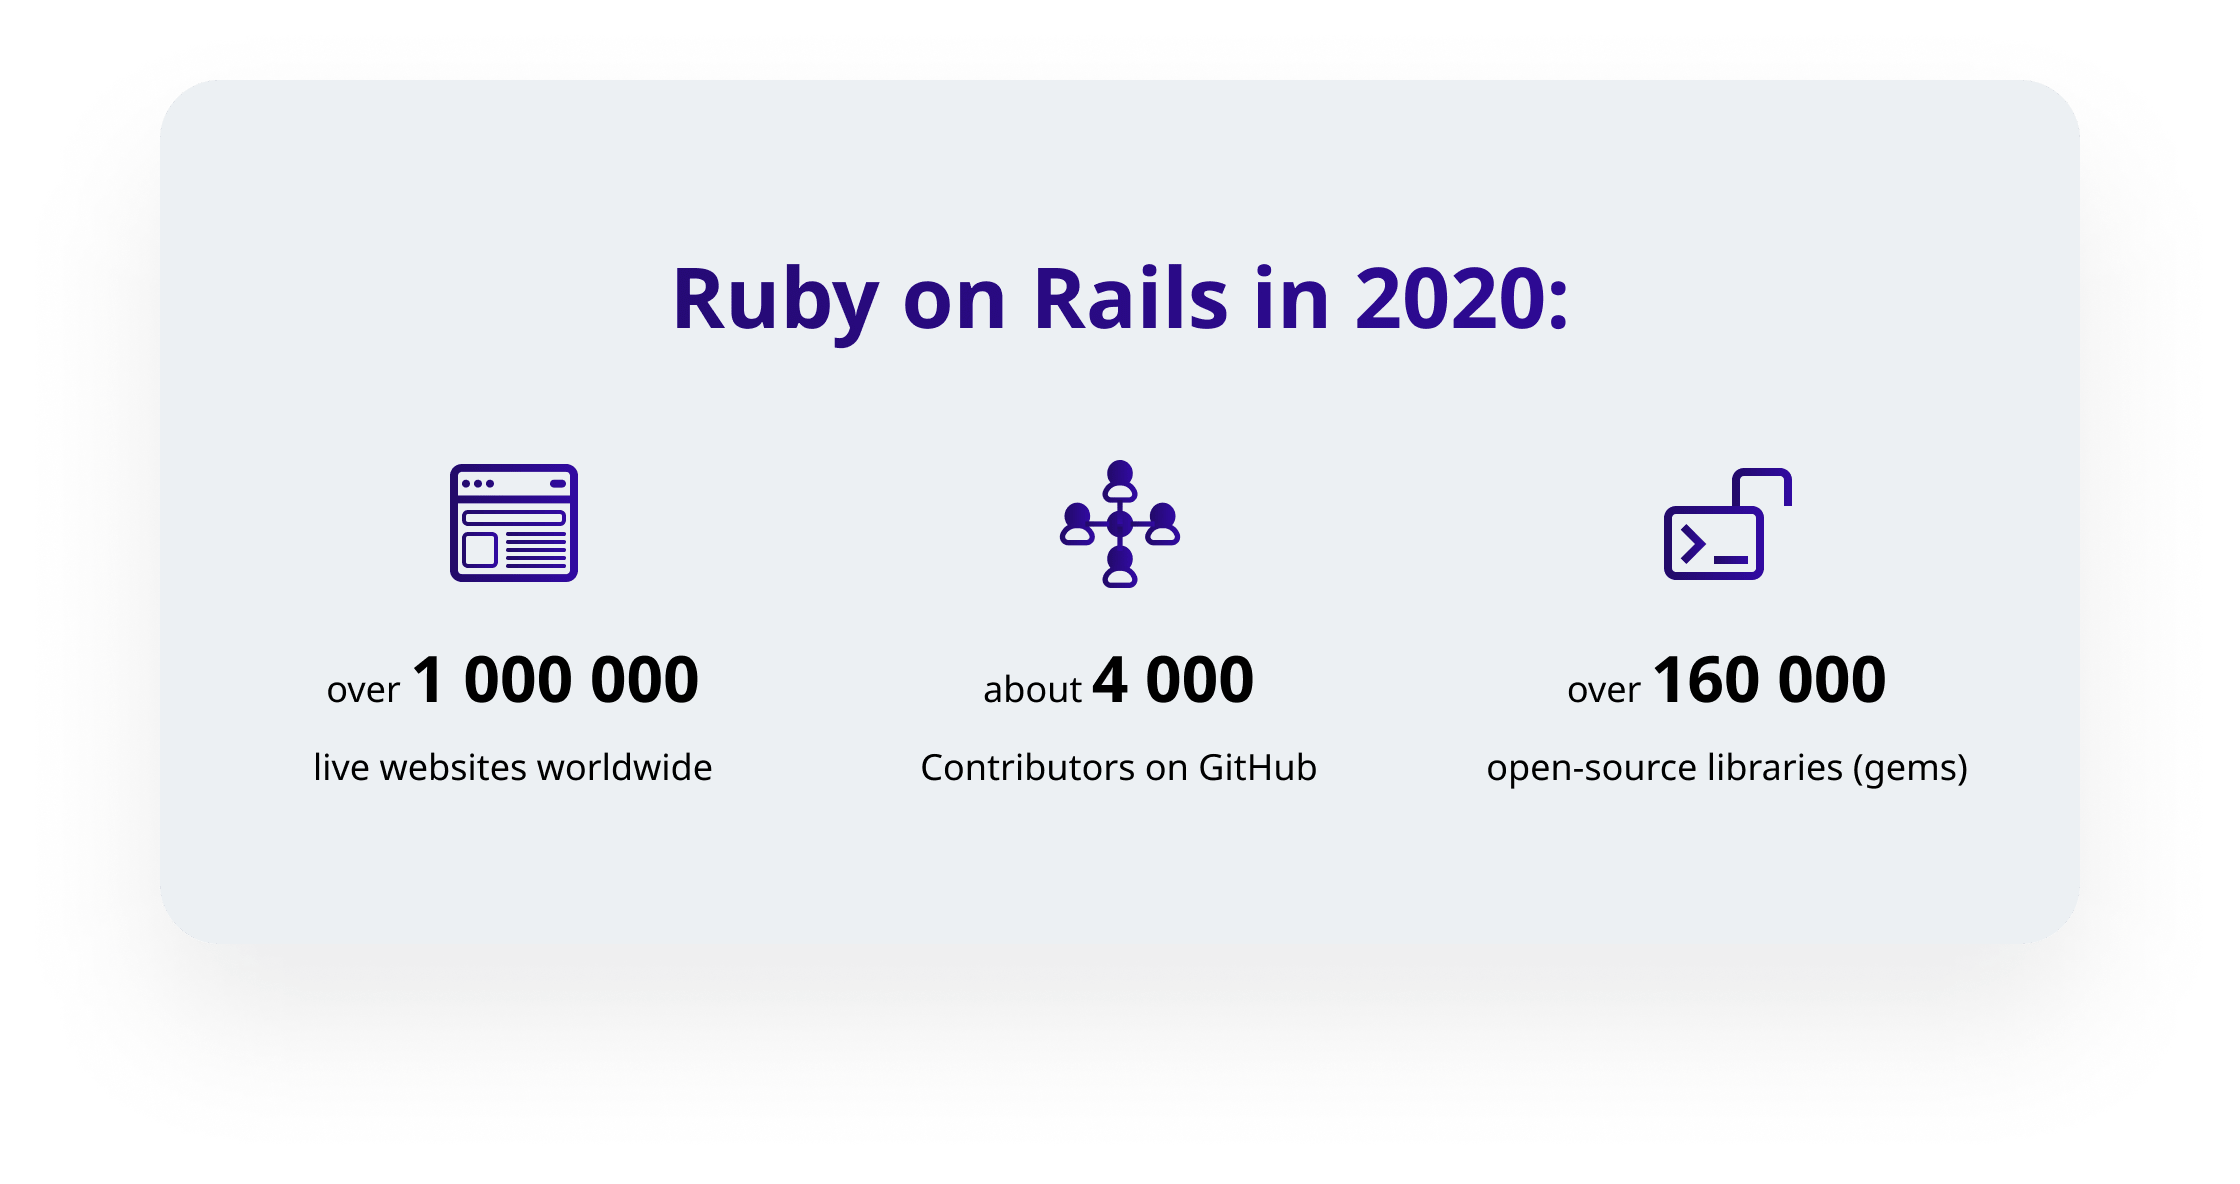 Ruby on Rails in 2020